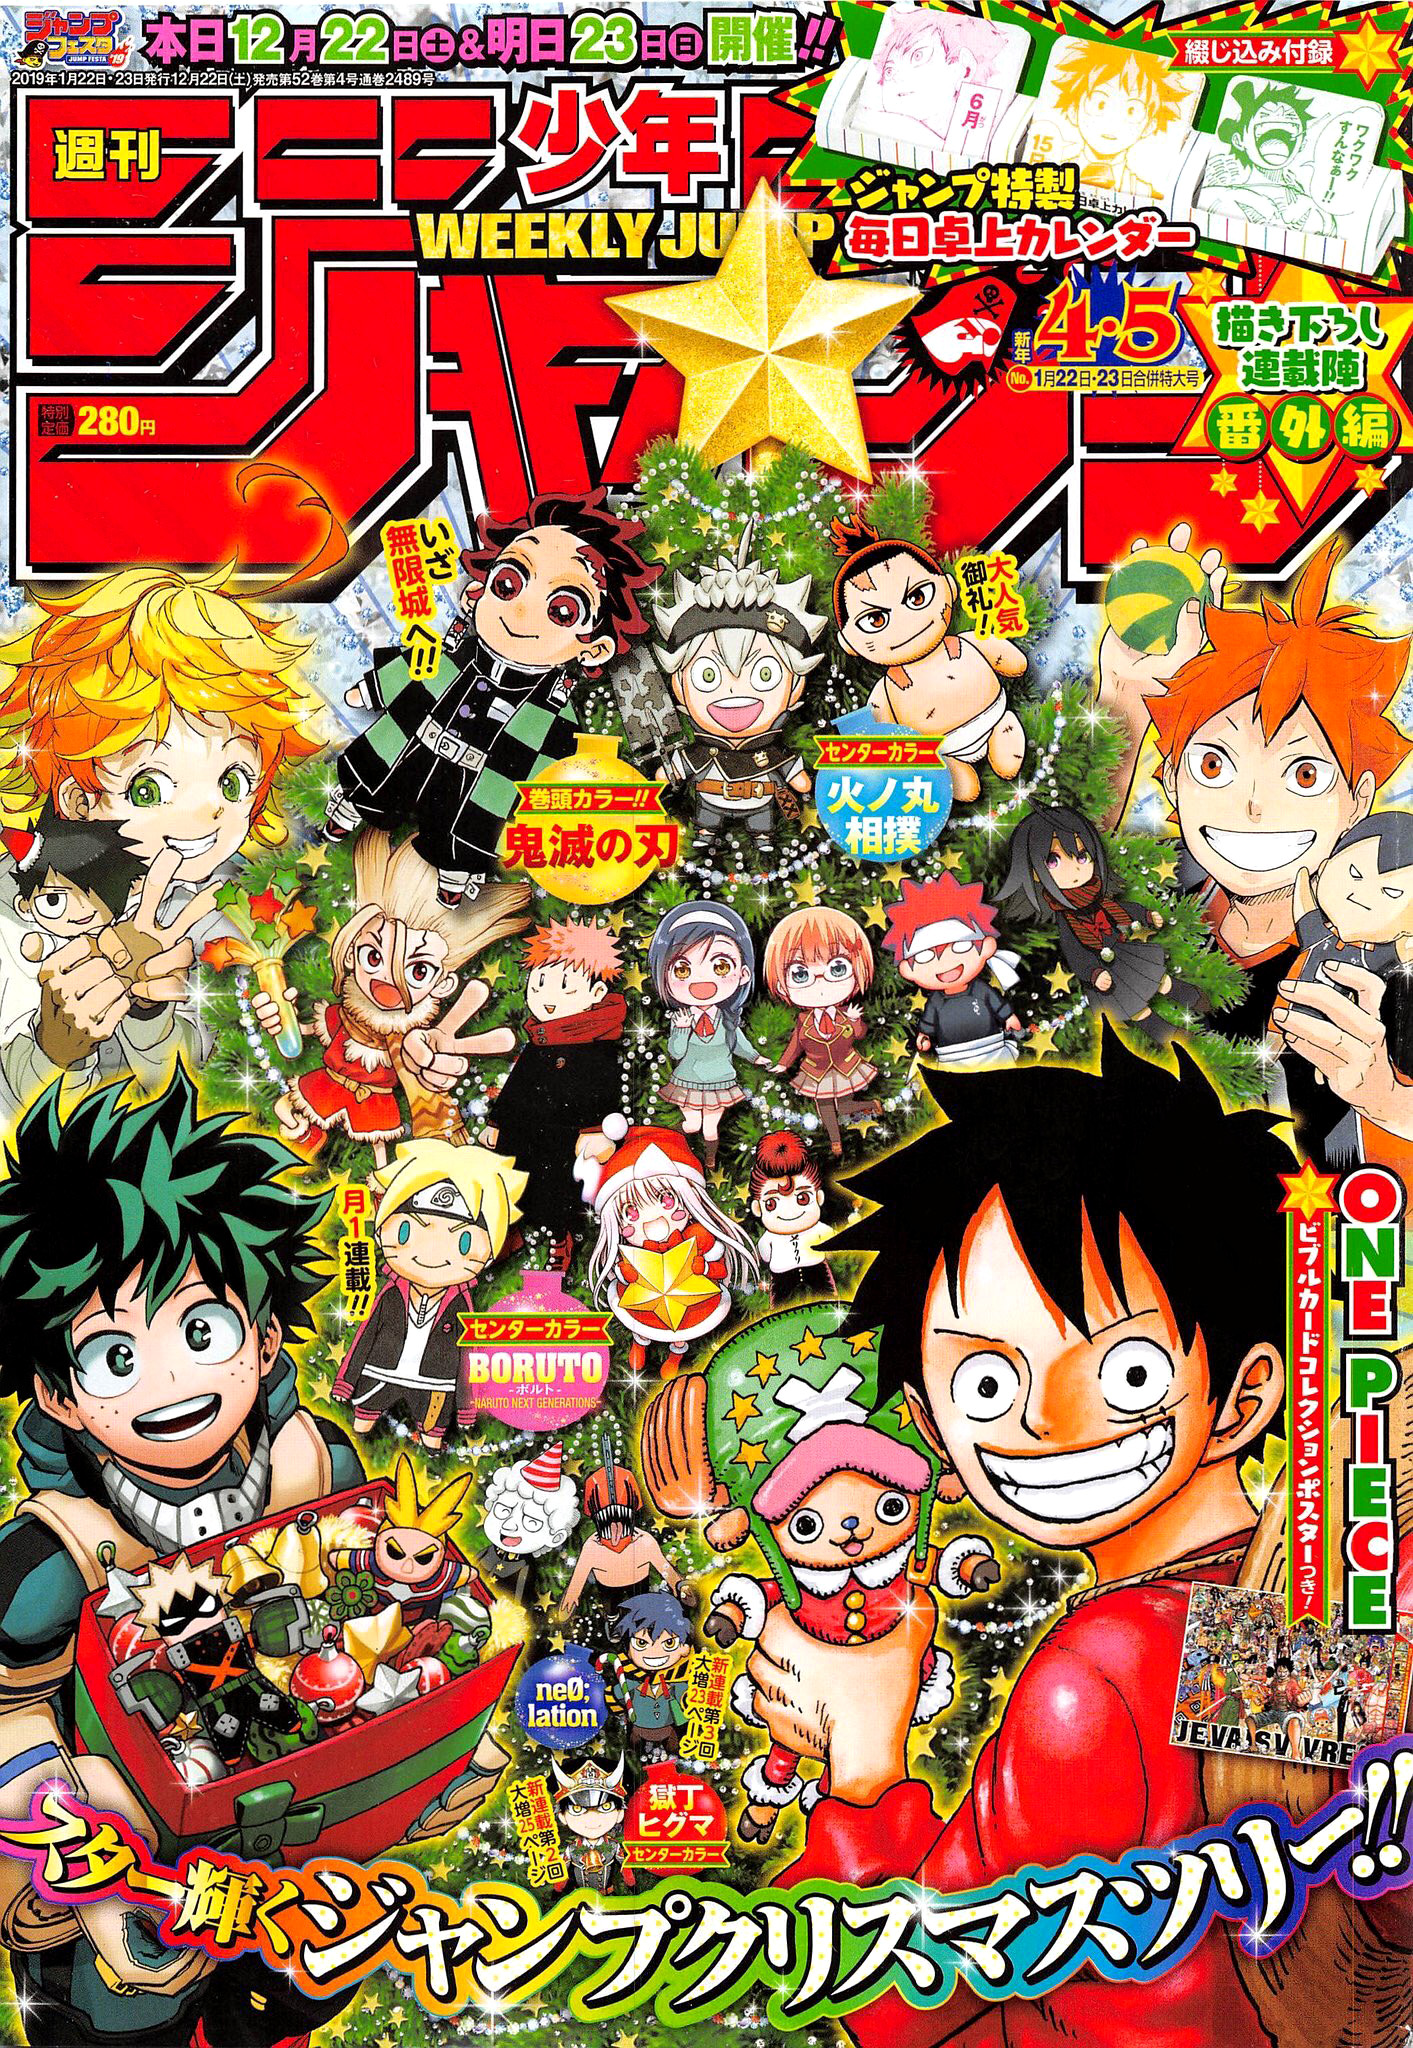 Shonen Jump Magazine Cover 1413x2048 Wallpaper Teahub Io